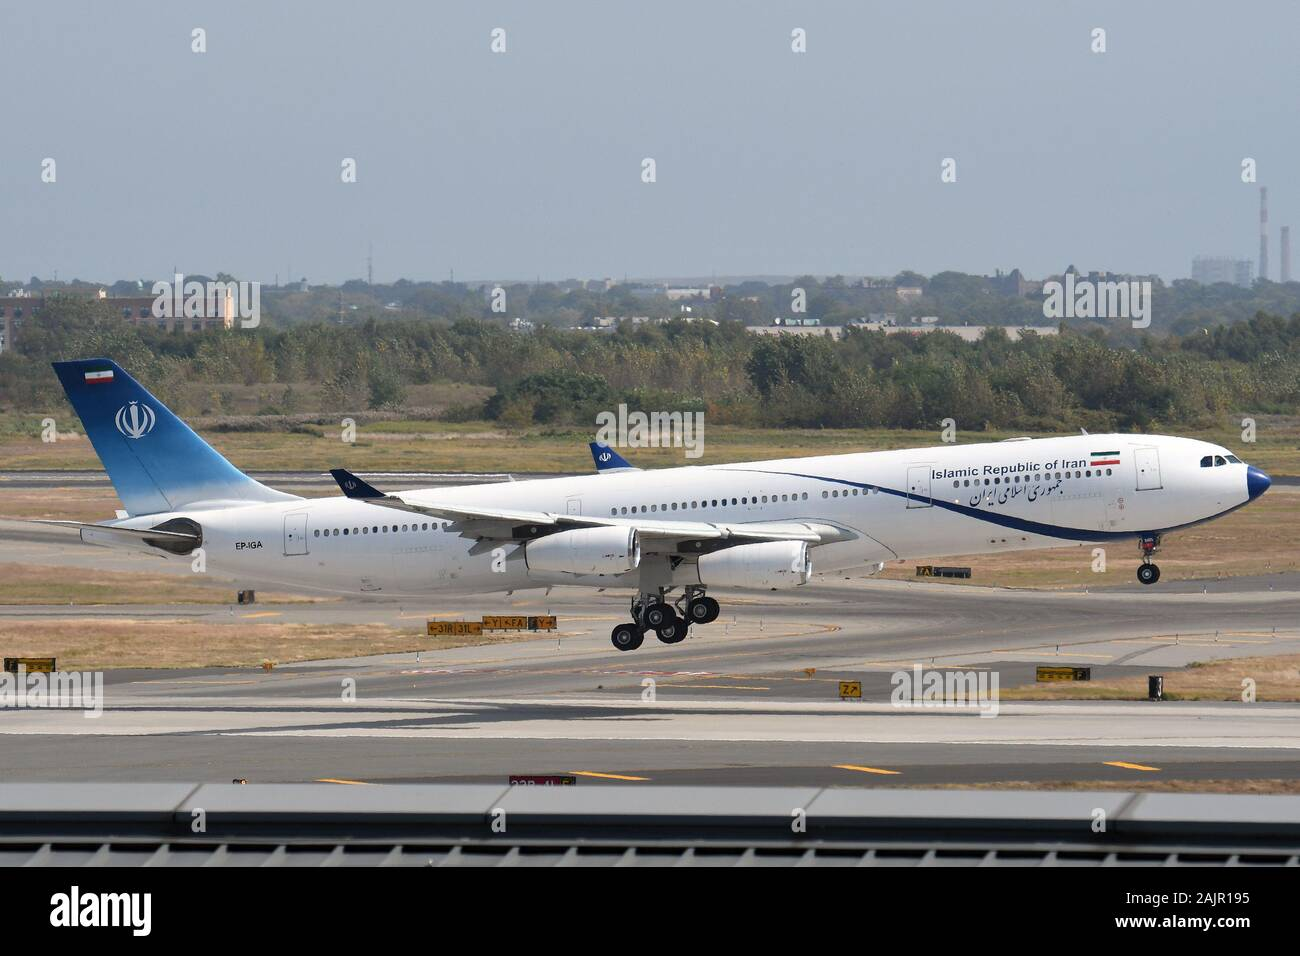 ISLAMIC REPUBLIC OF IRAN GOVERNMENT'S AIRBUS A340 AT NEW YORK. Stock Photo